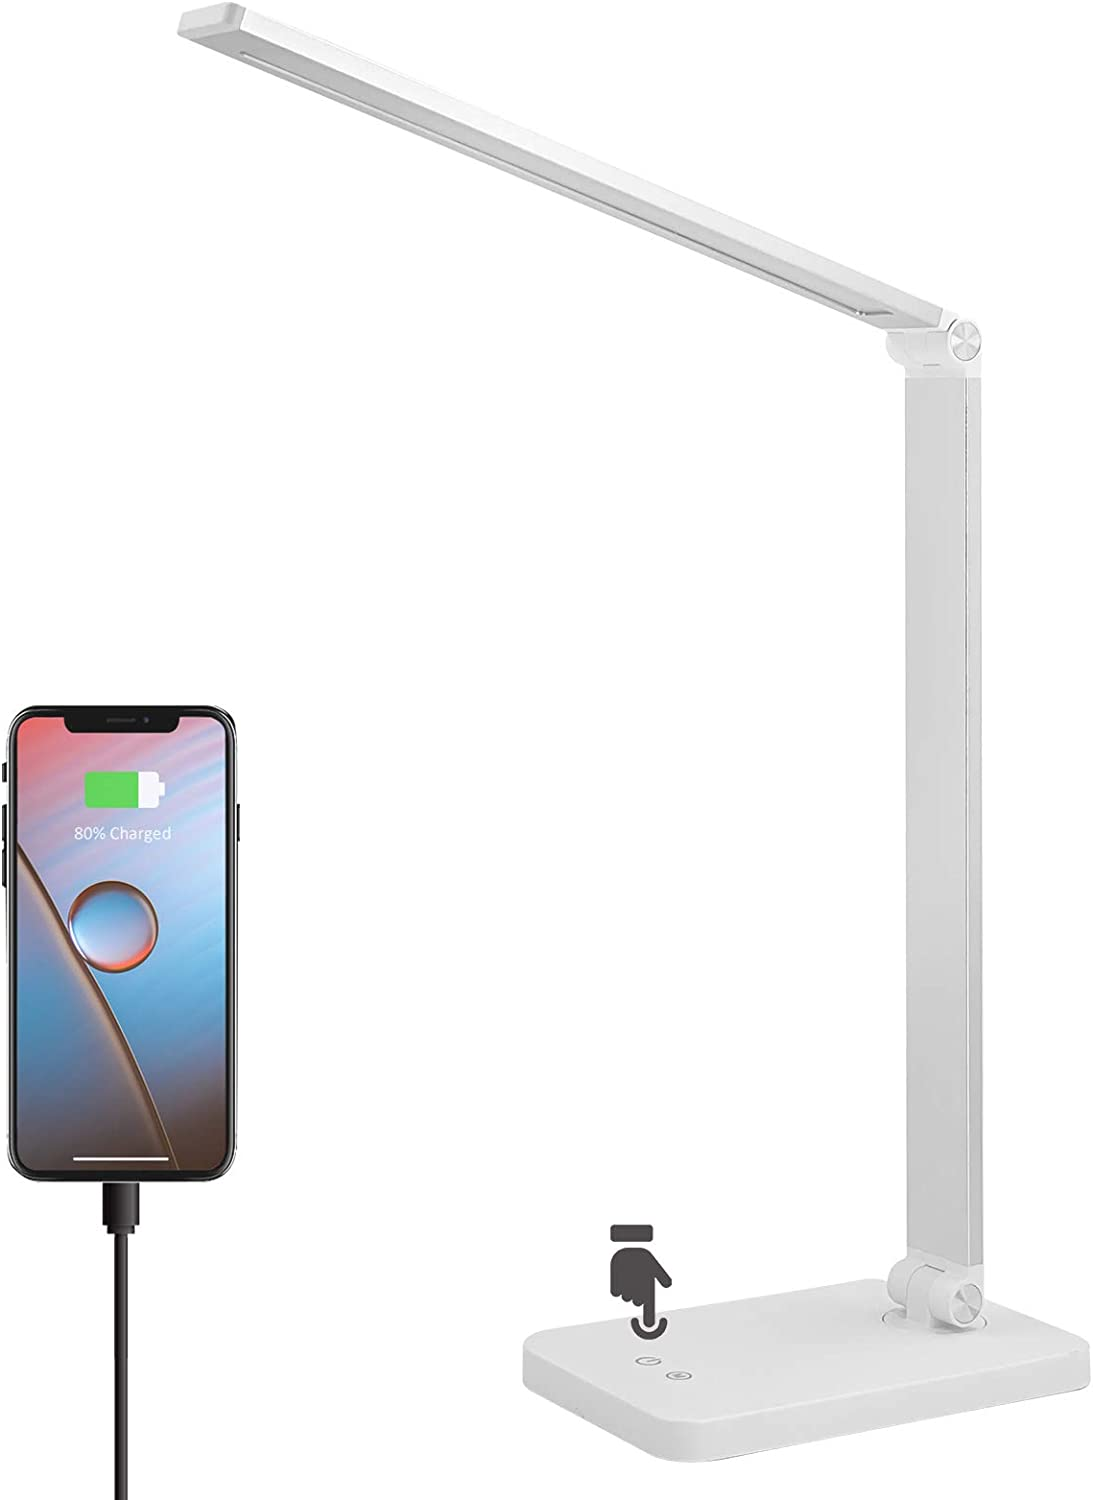 LED Desk Lamp, ZHUPIG Desk Lamp with USB Charging Port, Eye-Caring Desk Lamps for Home Office, 5 Lighting Modes & 3 Brightness Levels for Reading, Studying, Working (Adapter Included)